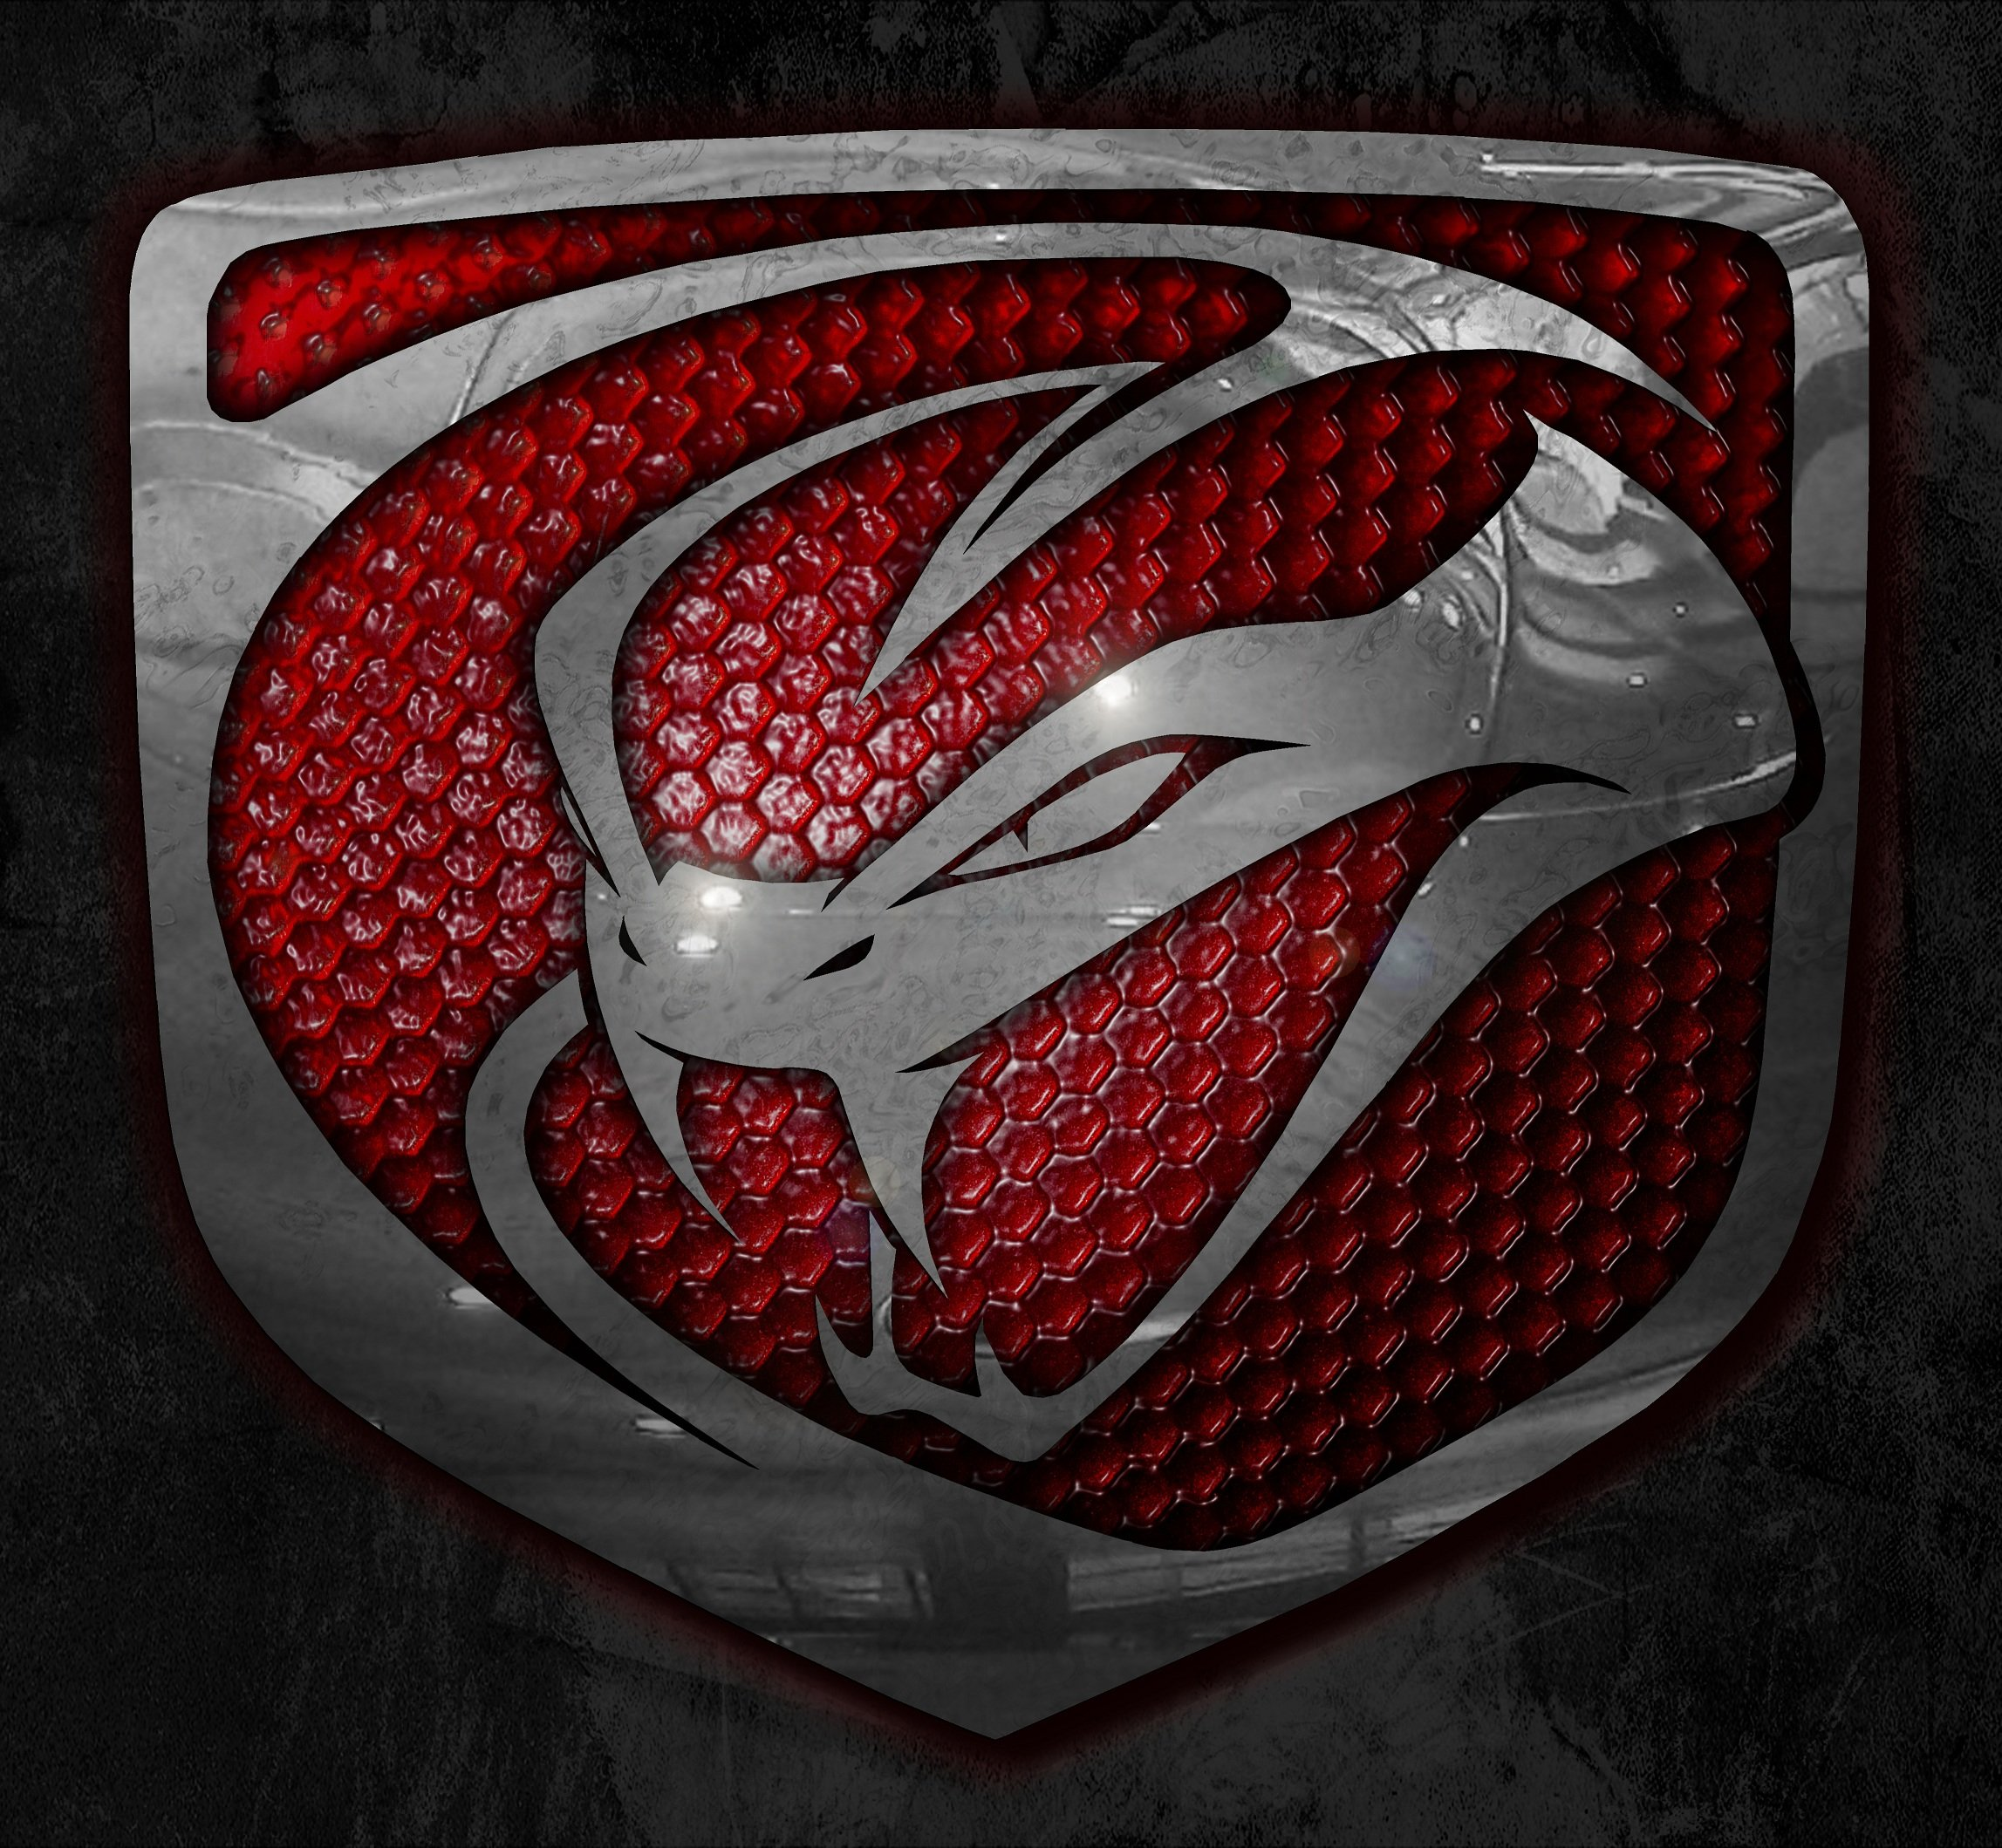 Red viper snake logo - photo#1